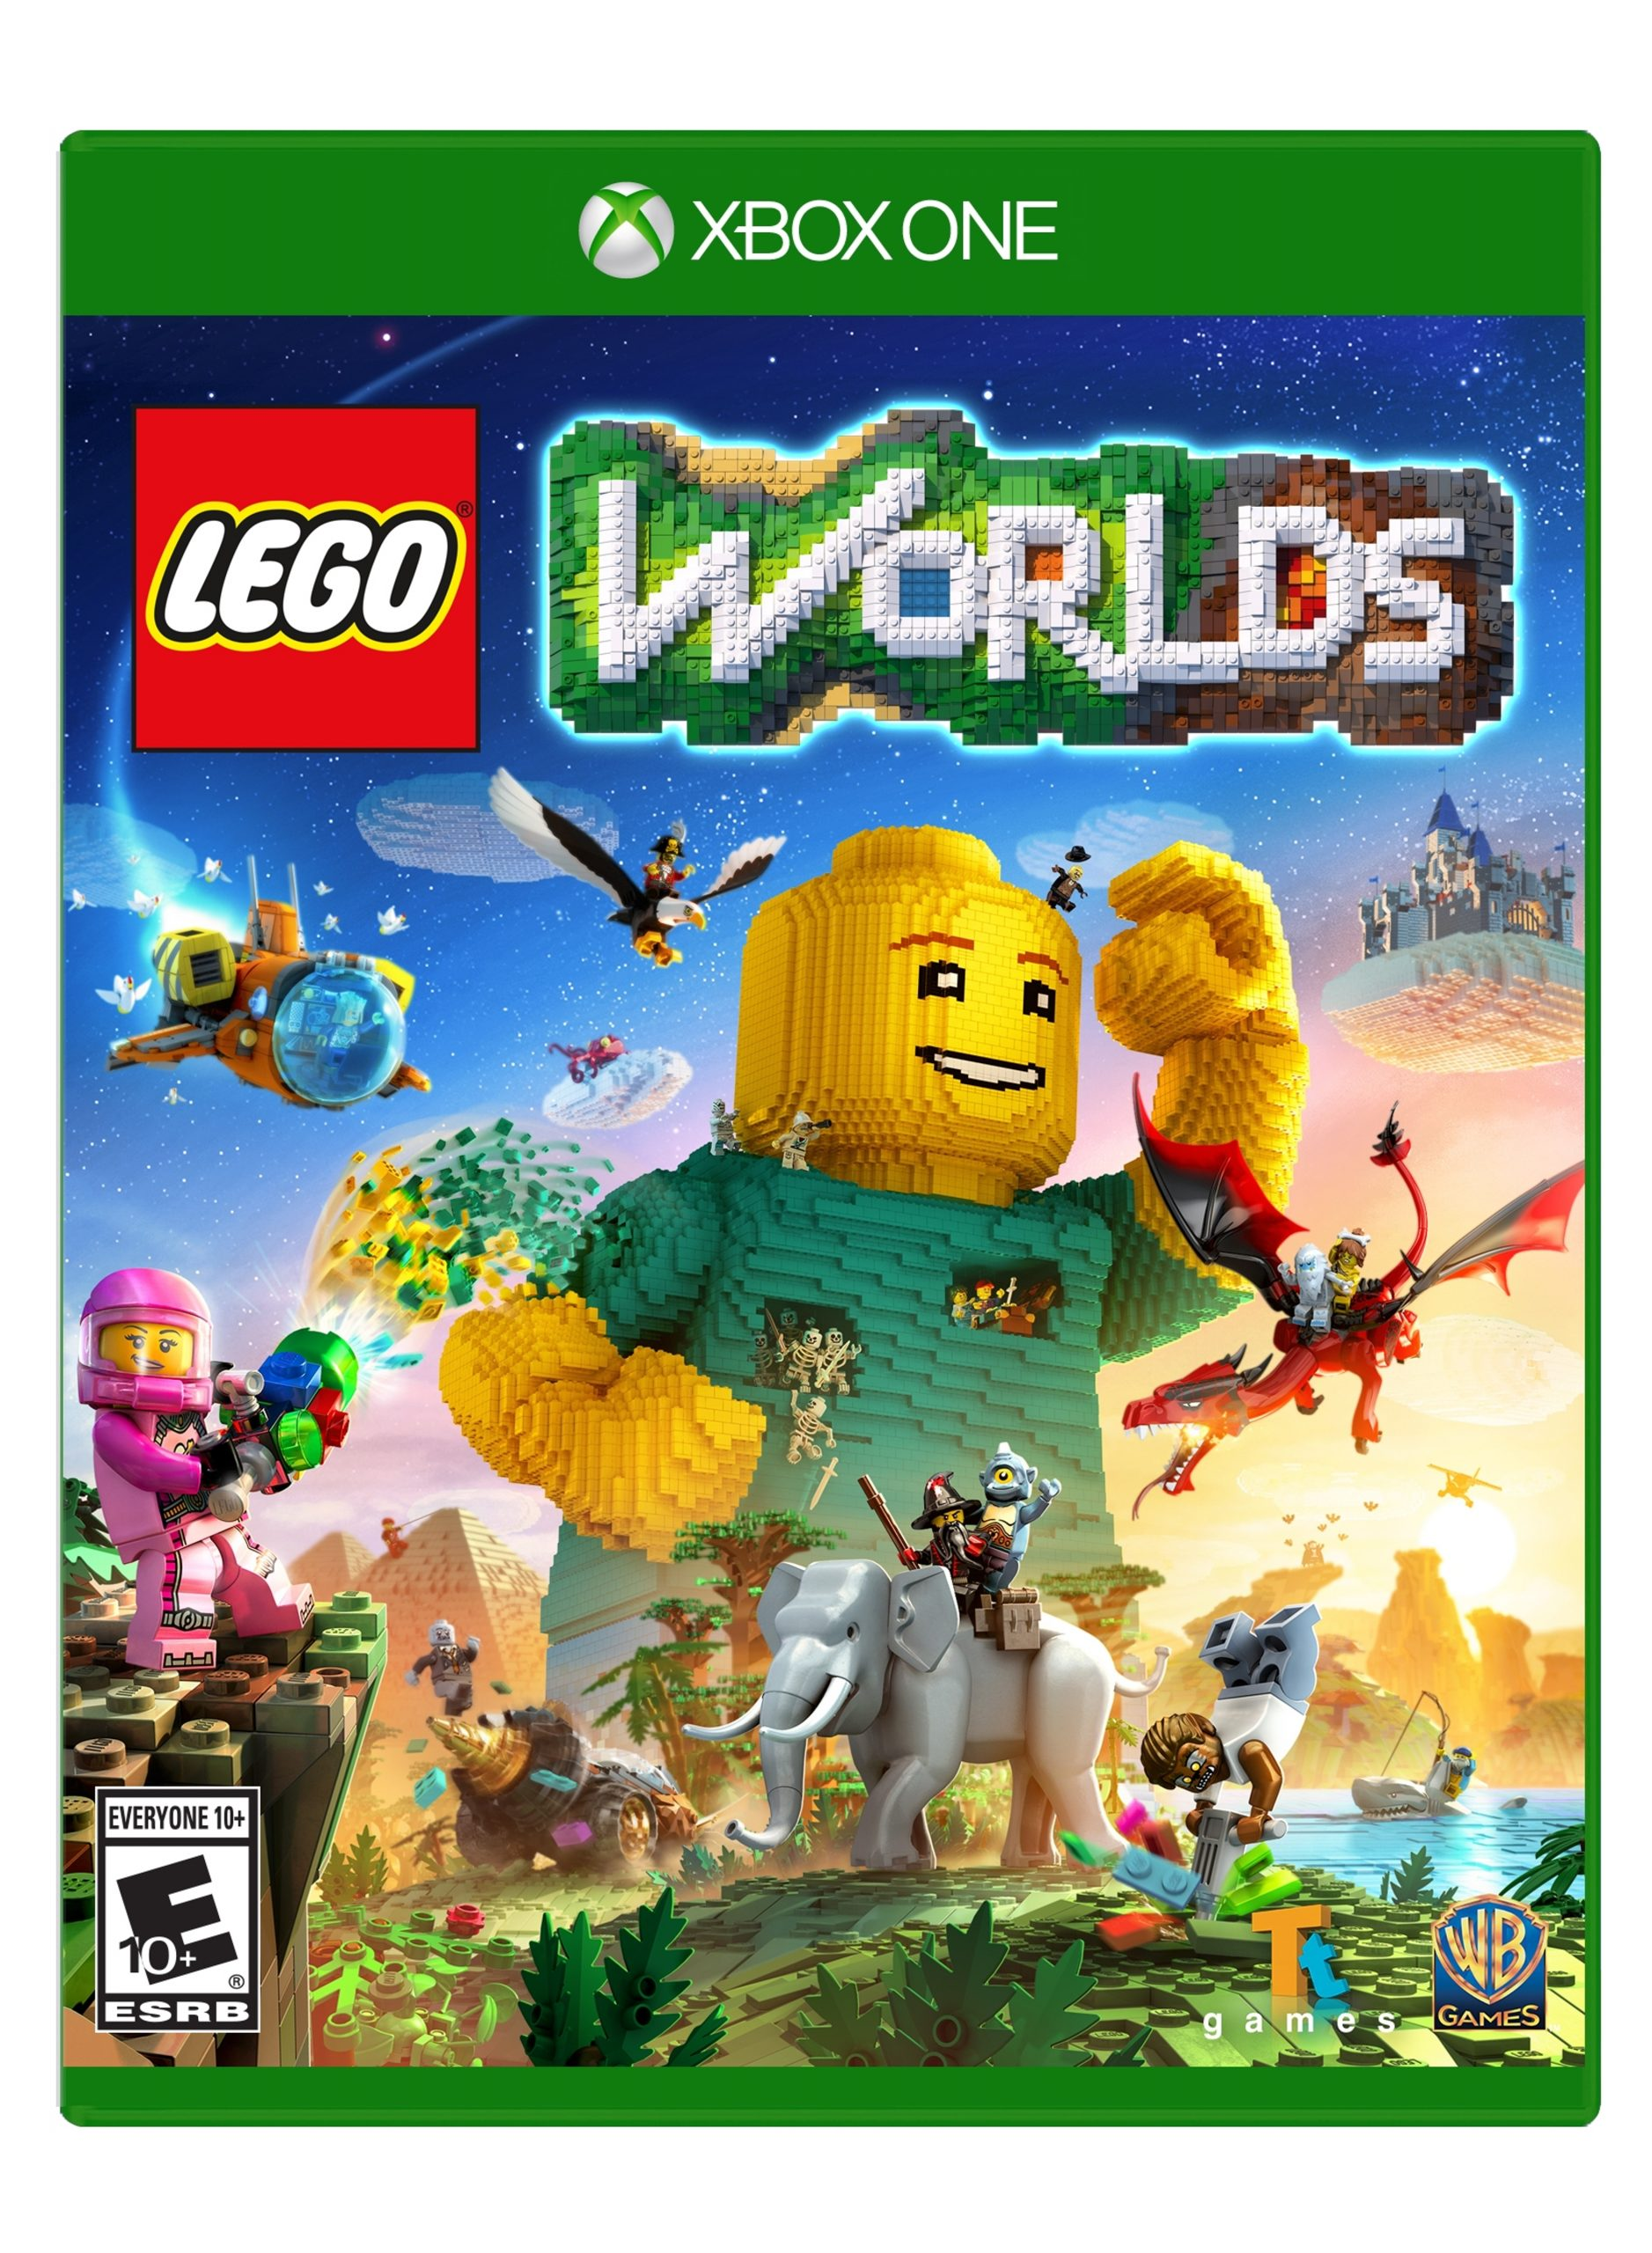 lego 5005372 worlds xbox one video game scaled